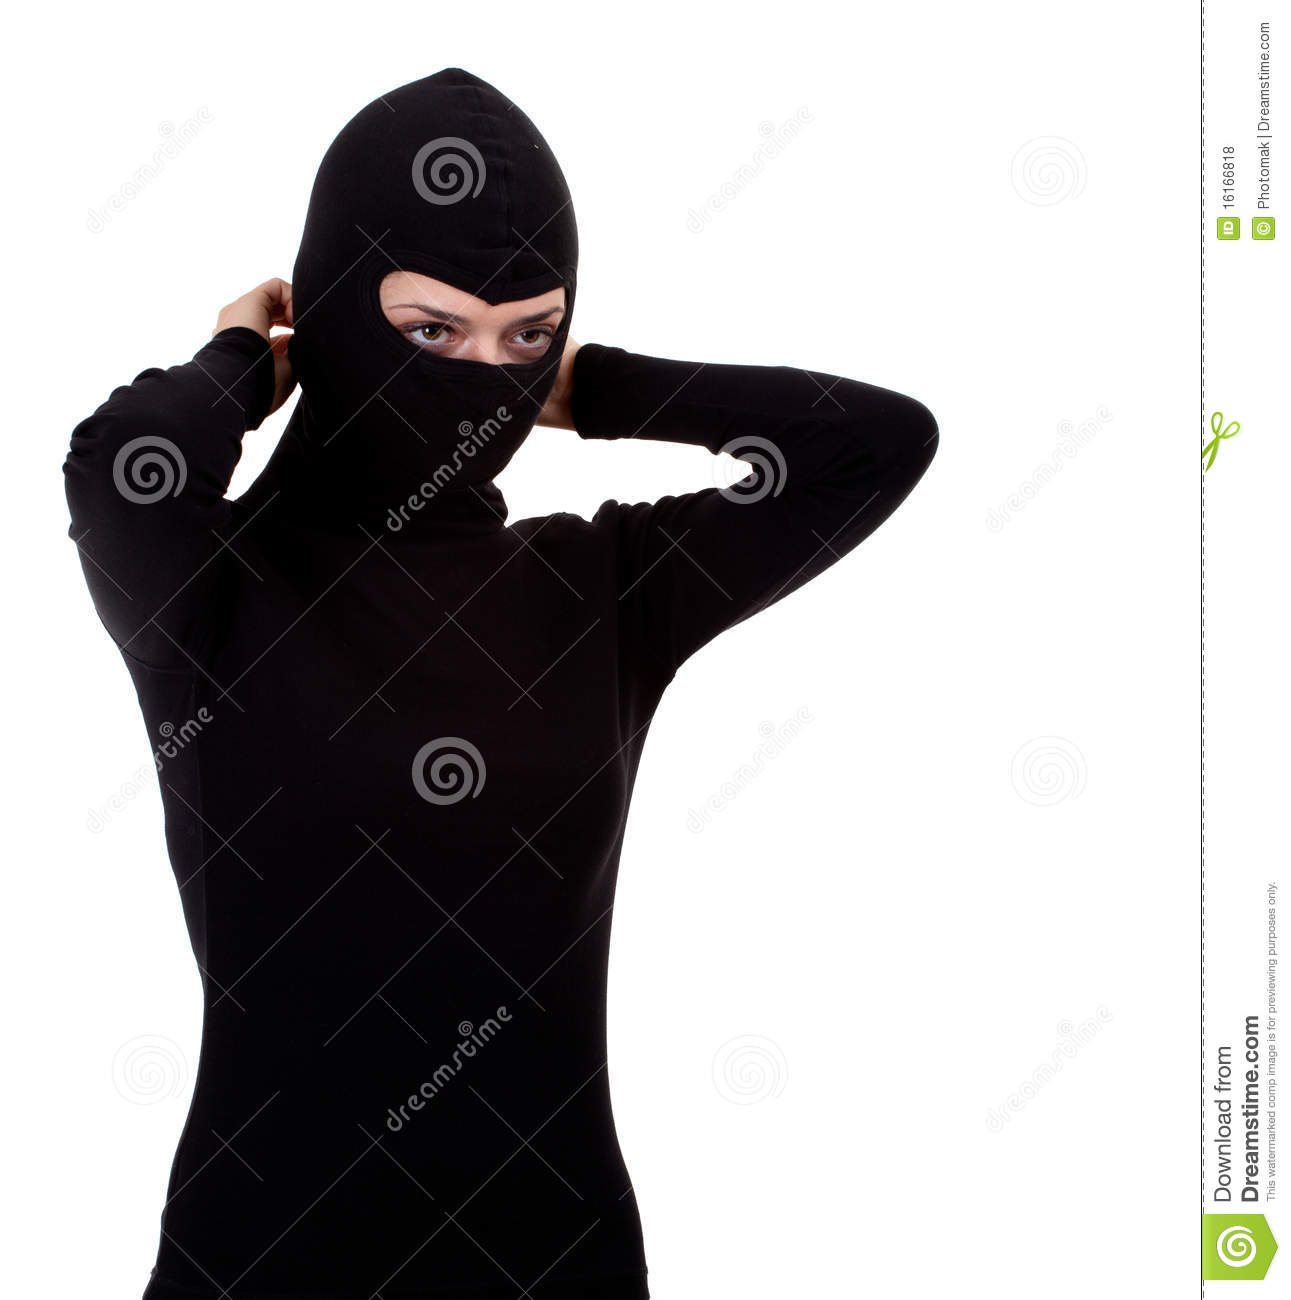 Female Thief Founding Balaclava Royalty Free Stock Photos   Image